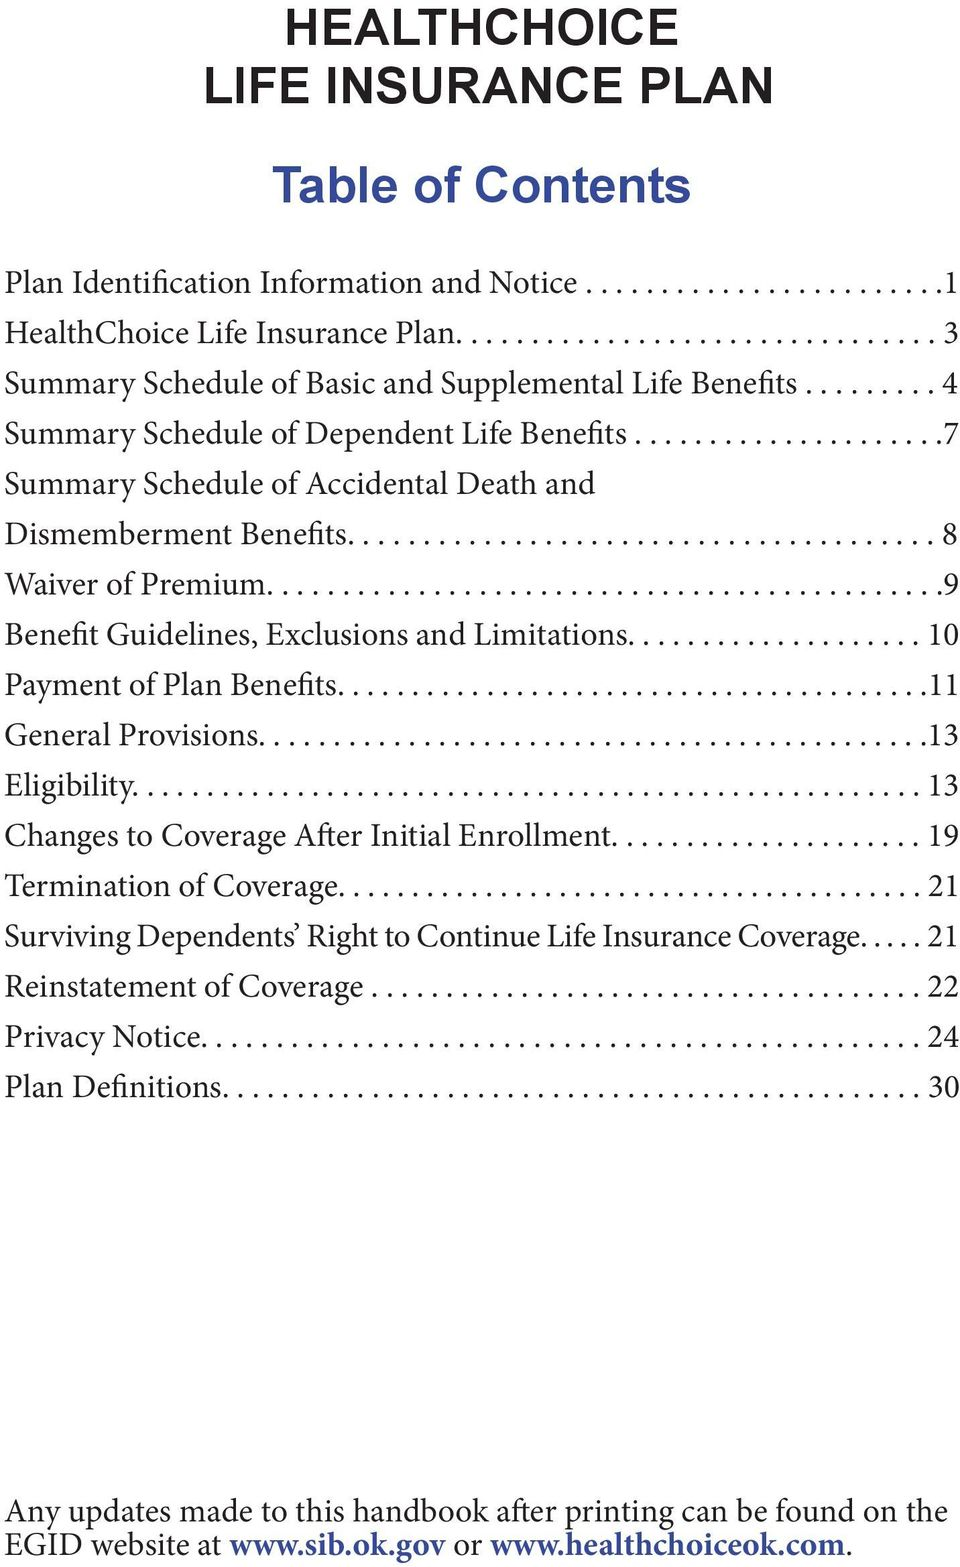 ....................7 Summary Schedule of Accidental Death and Dismemberment Benefits....................................... 8 Waiver of Premium.............................................9 Benefit Guidelines, Exclusions and Limitations.